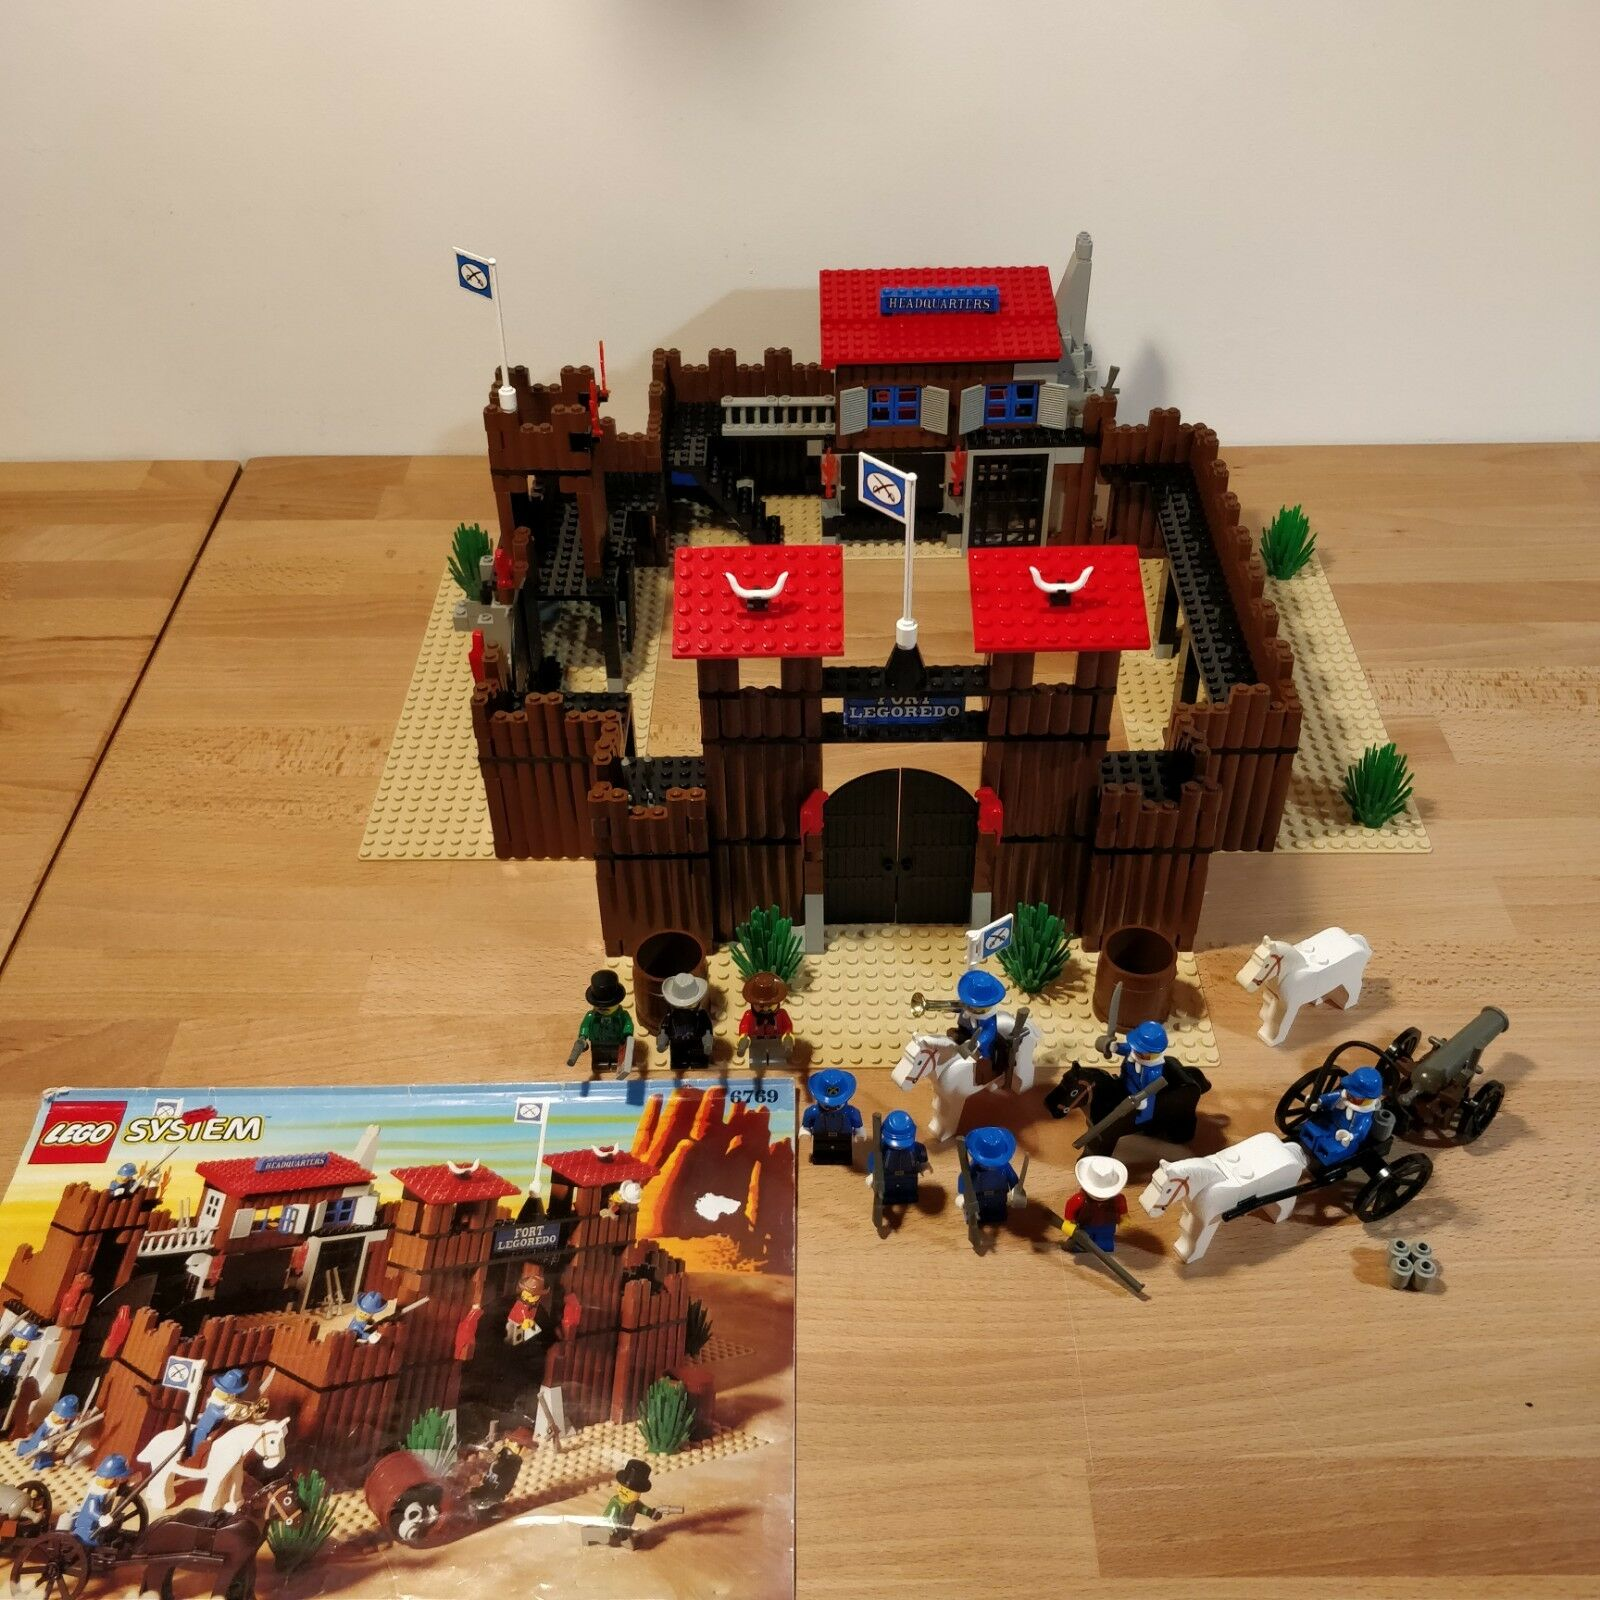 Lego Western 6769 Fort Legoredo 1996 Excellent Condition